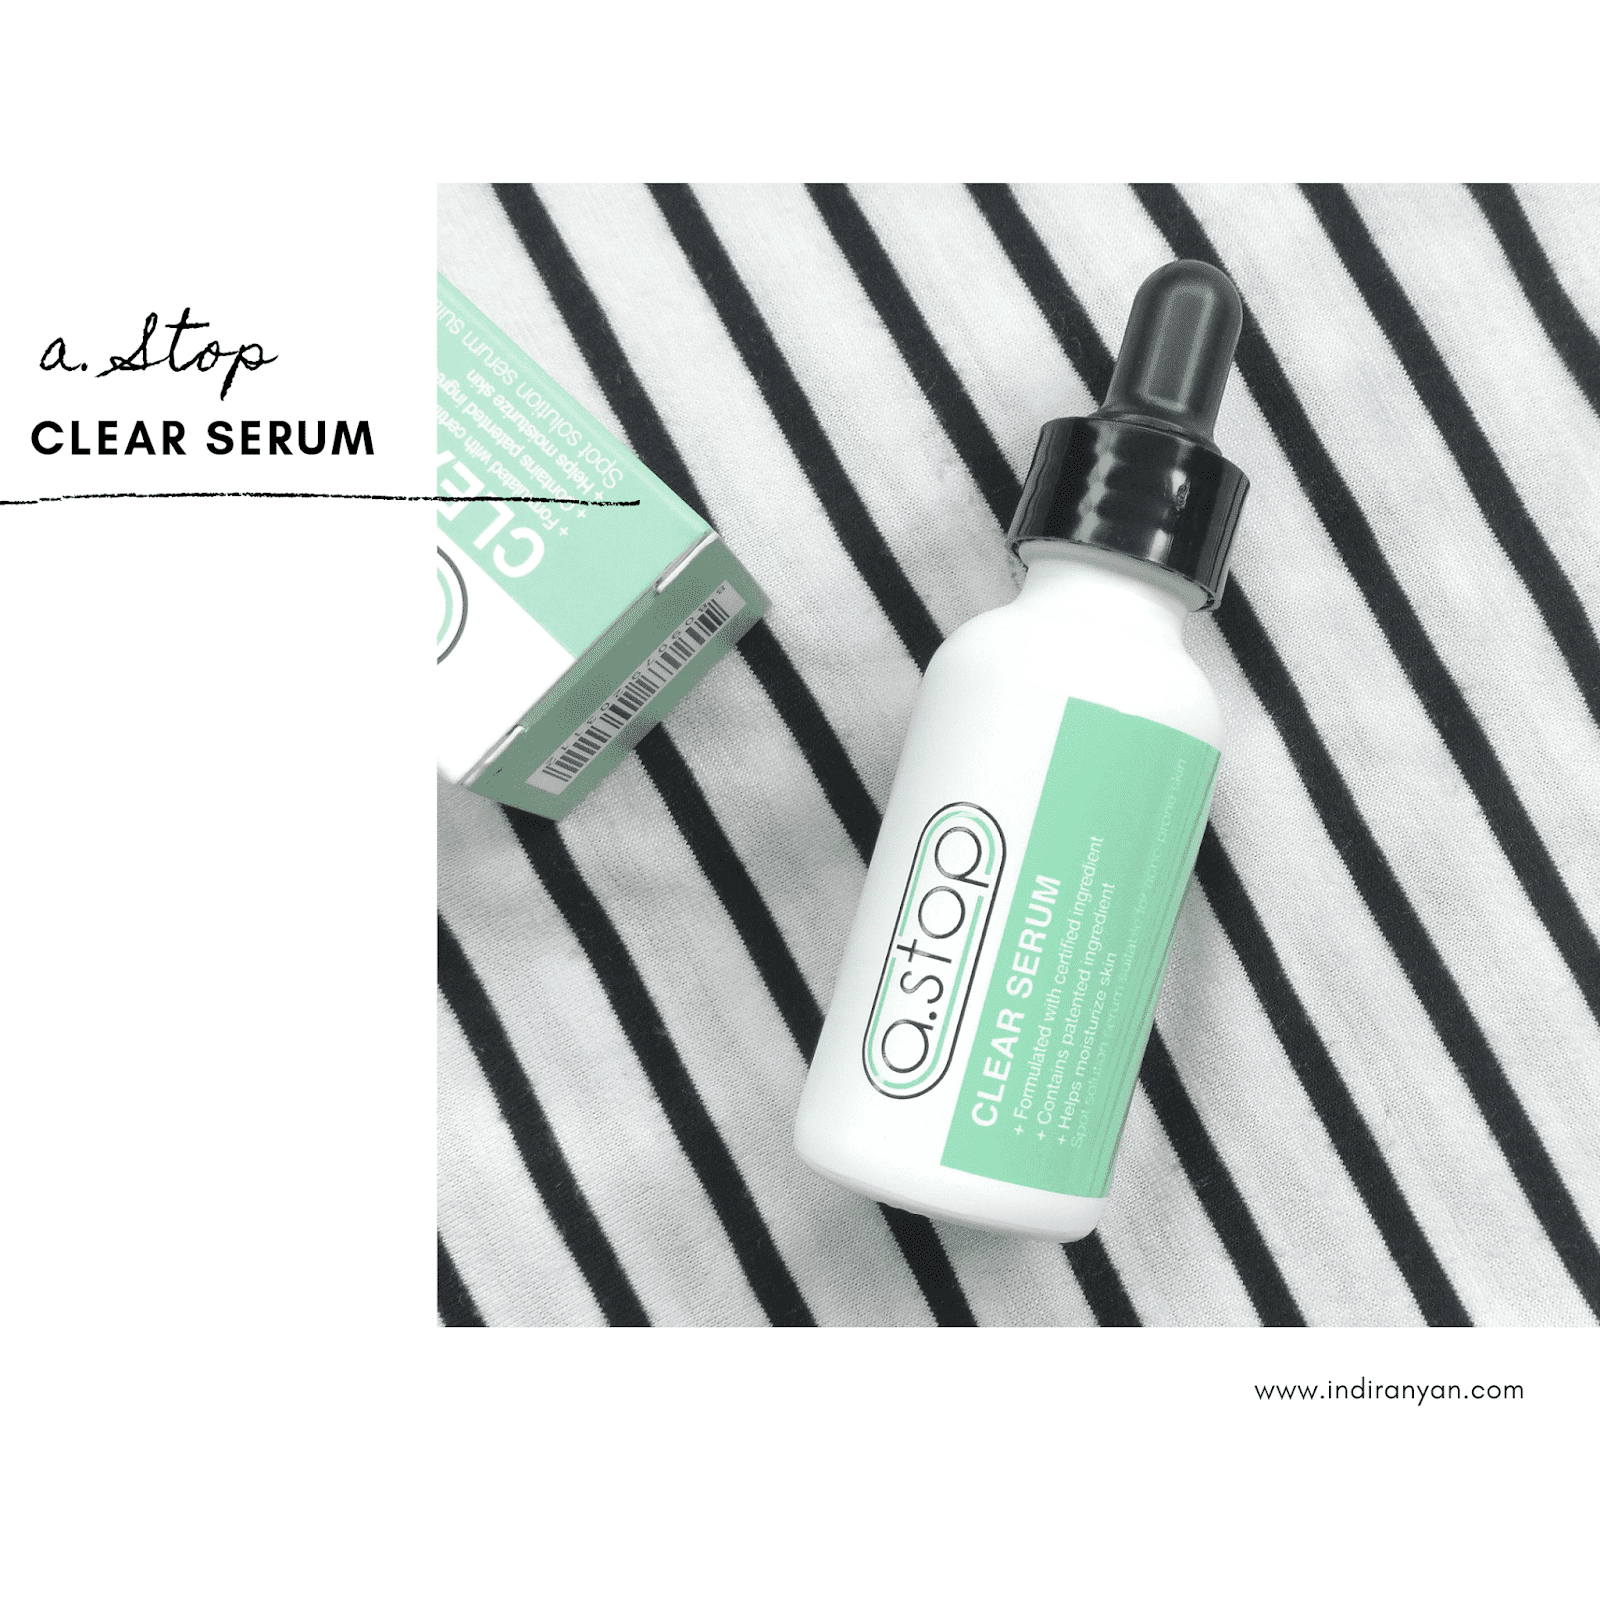 astop-clear-serum